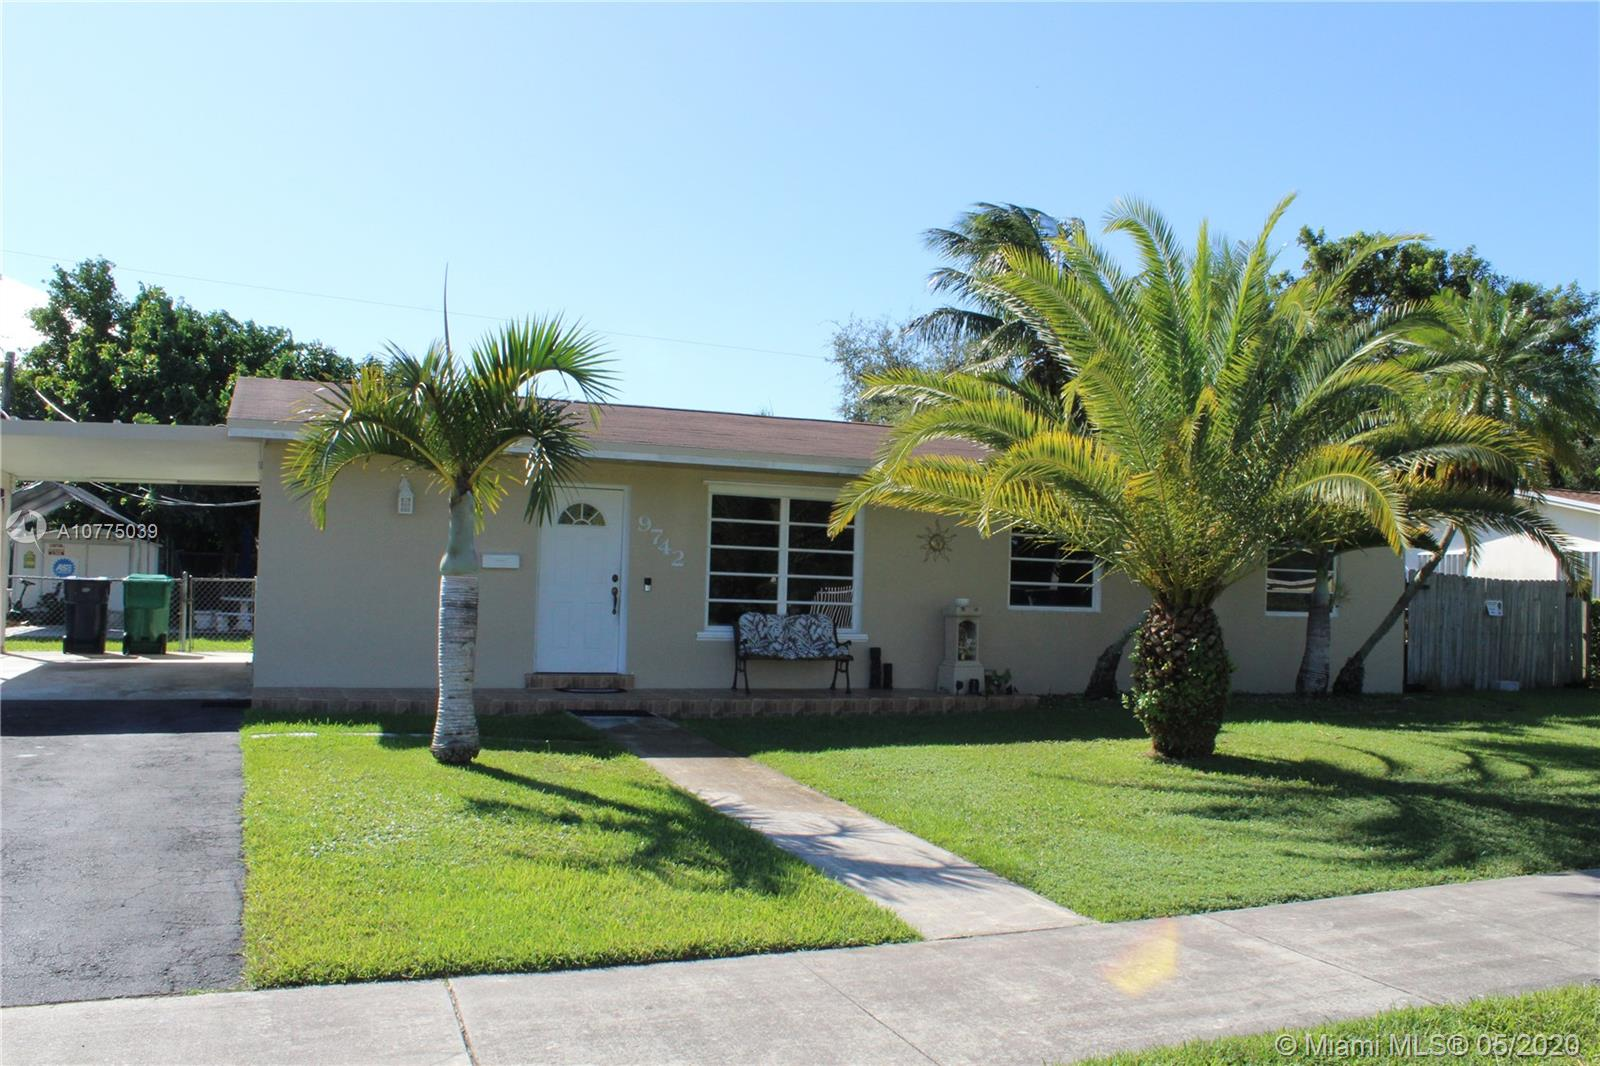 9742 SW 165th St, Miami, Florida 33157, 3 Bedrooms Bedrooms, ,2 BathroomsBathrooms,Residential,For Sale,9742 SW 165th St,A10775039